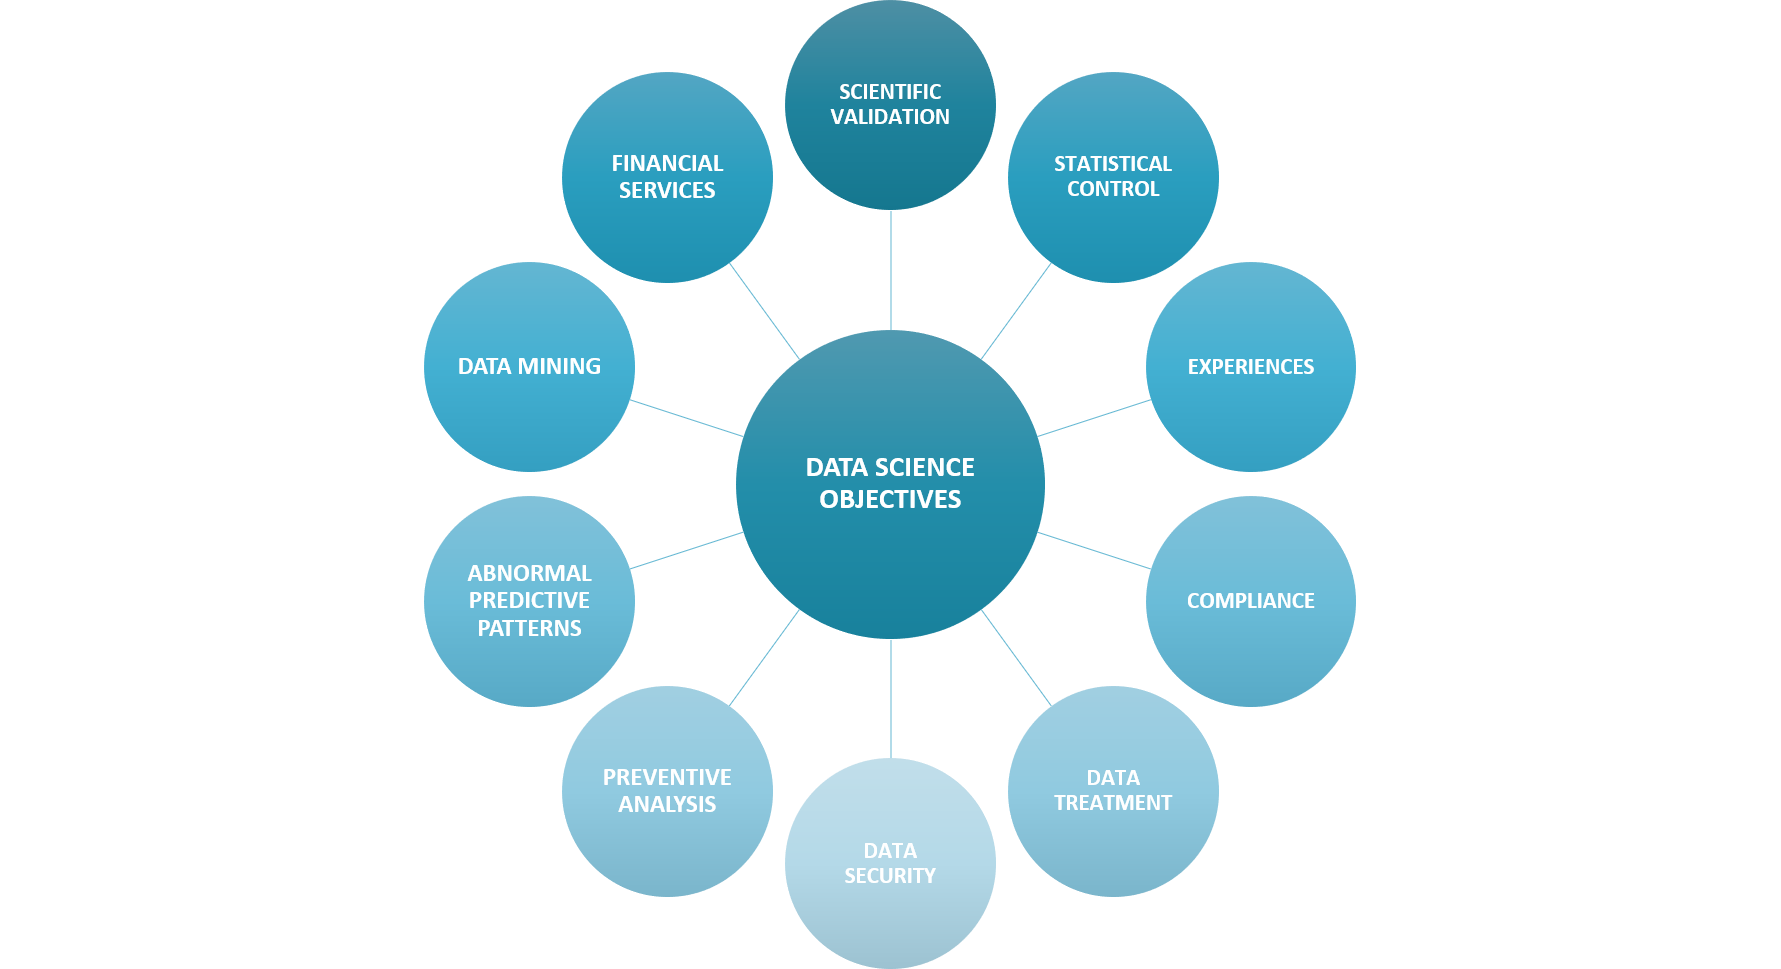 Data-Science-Objectives-introduction